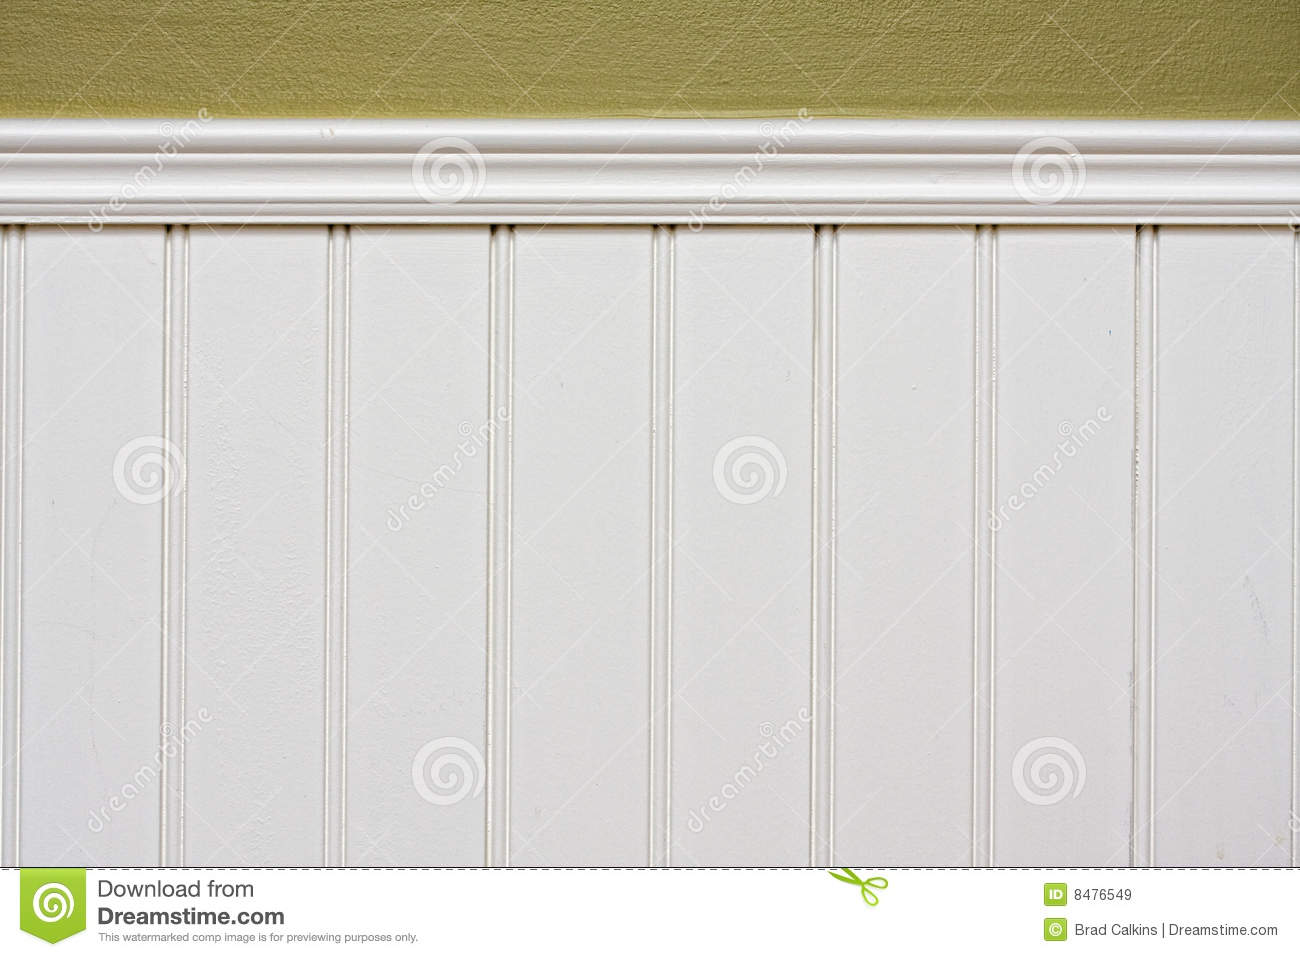 Wainscoting Stock Image Image Of Boards Groove Painted